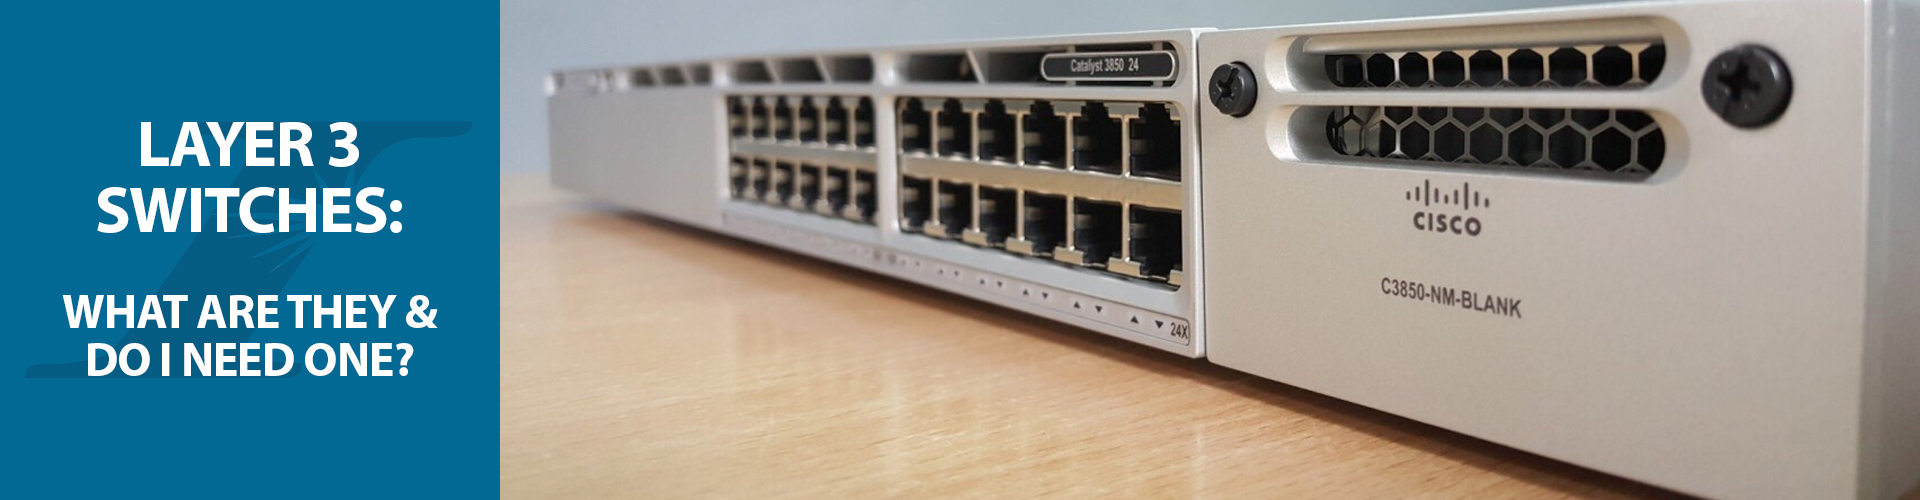 Layer 3 Switches: What Are They and Do I Need One?